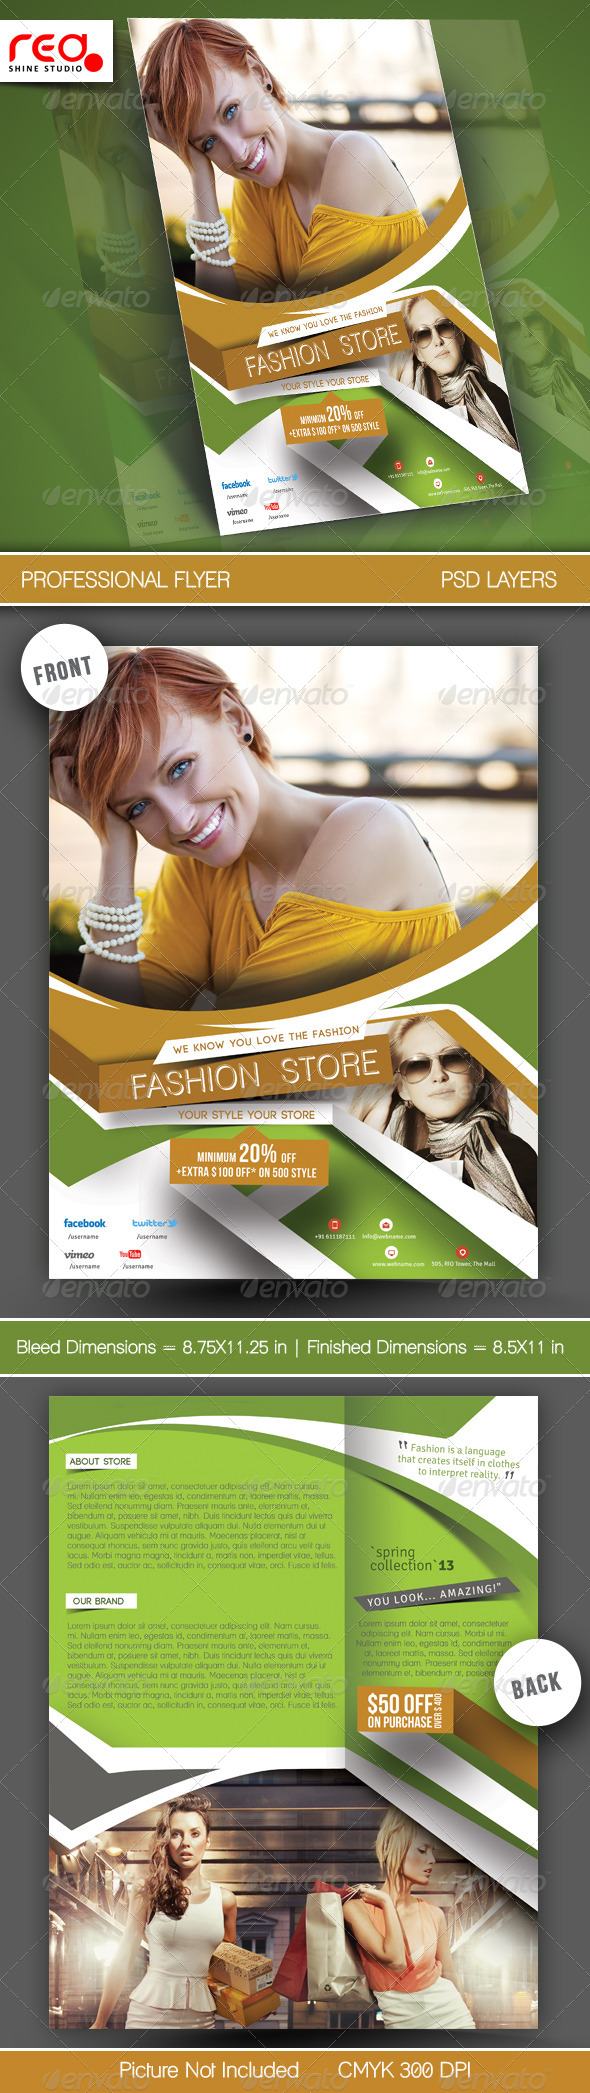 GraphicRiver Fashion Store Flyer Template 5816498